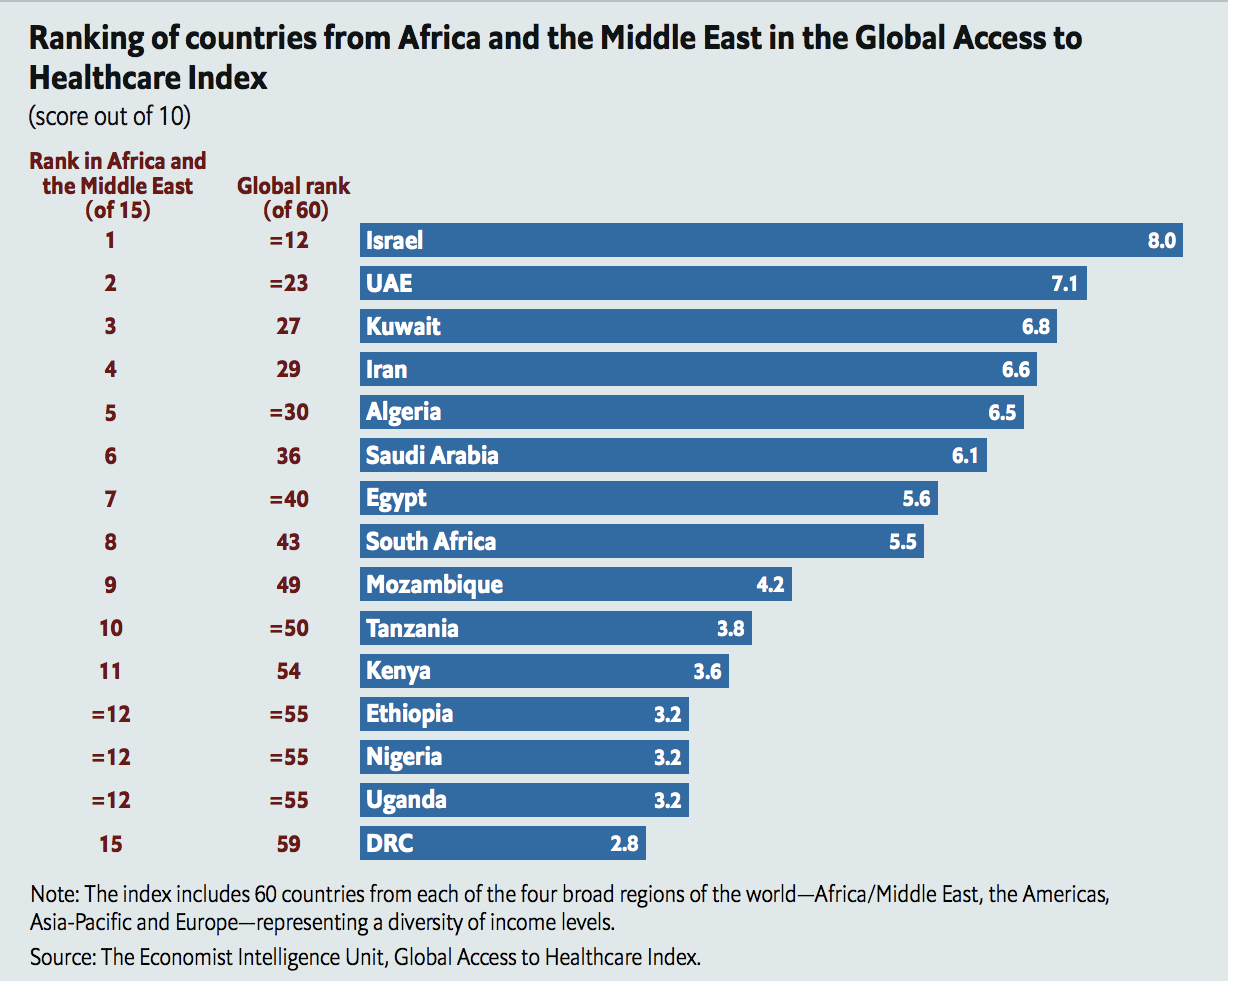 Access to healthcare is relatively poor in many African countries - can digital technology make a difference?